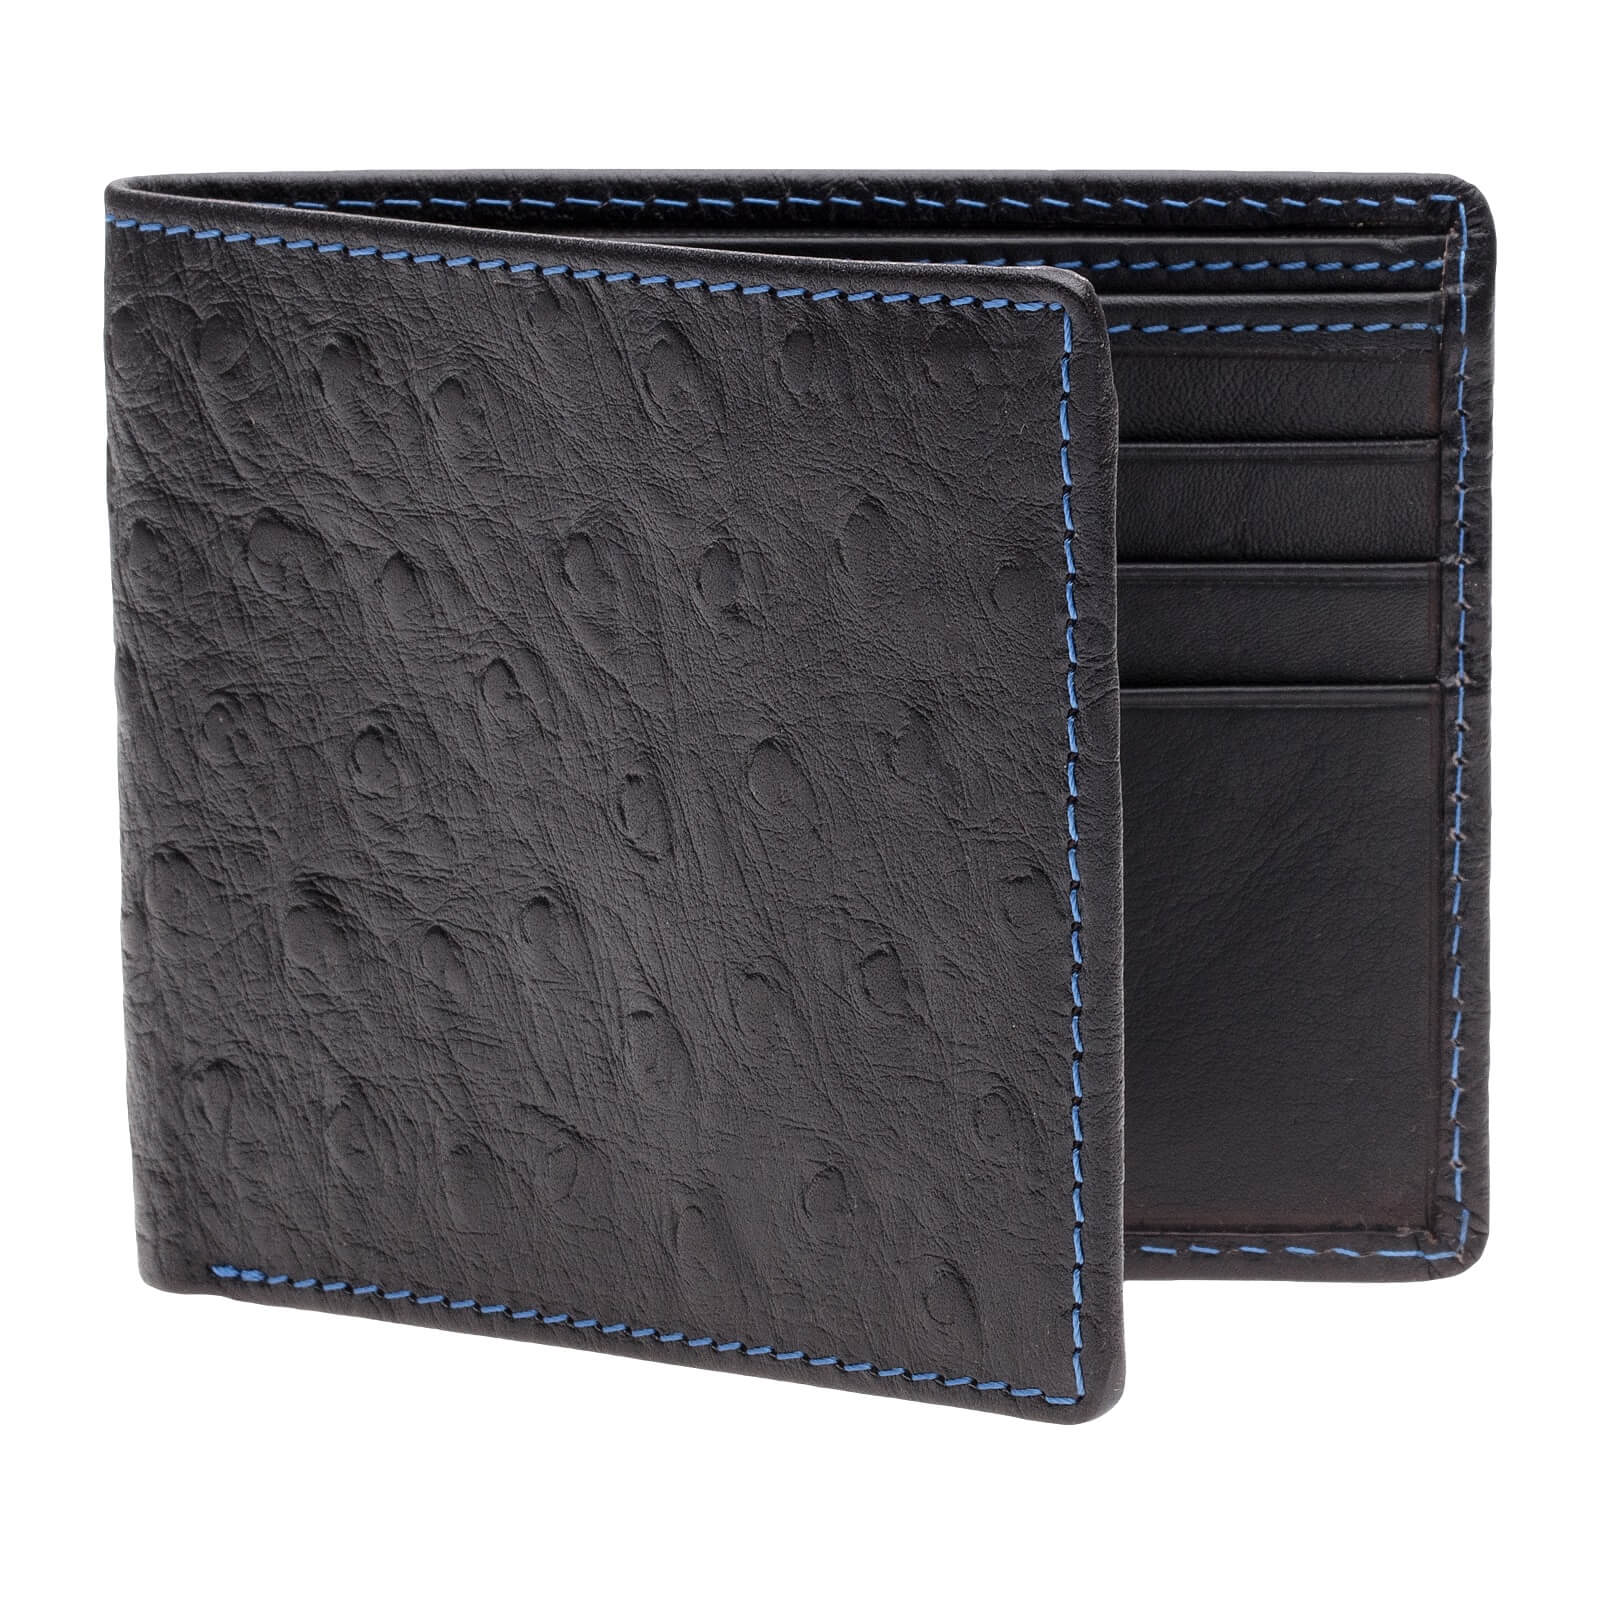 Black Mock Ostrich Vegetable Tan Leather Wallet - Cobalt / Black / One Size | Mens Fashion & Leather Goods by Roger Ximenez